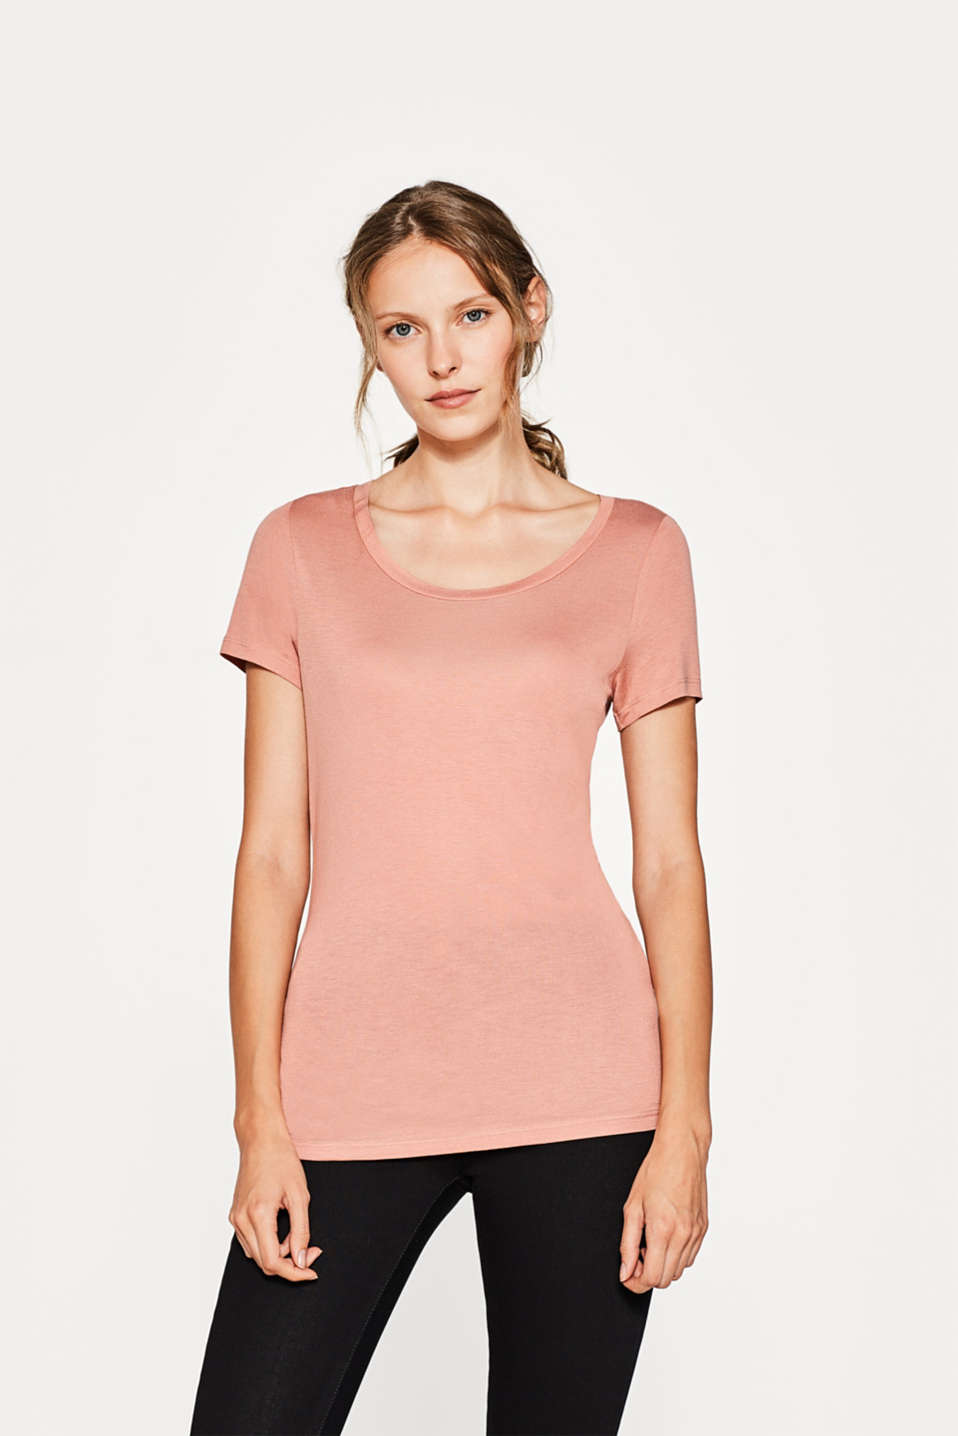 Esprit - Flowing T-shirt with a large neckline